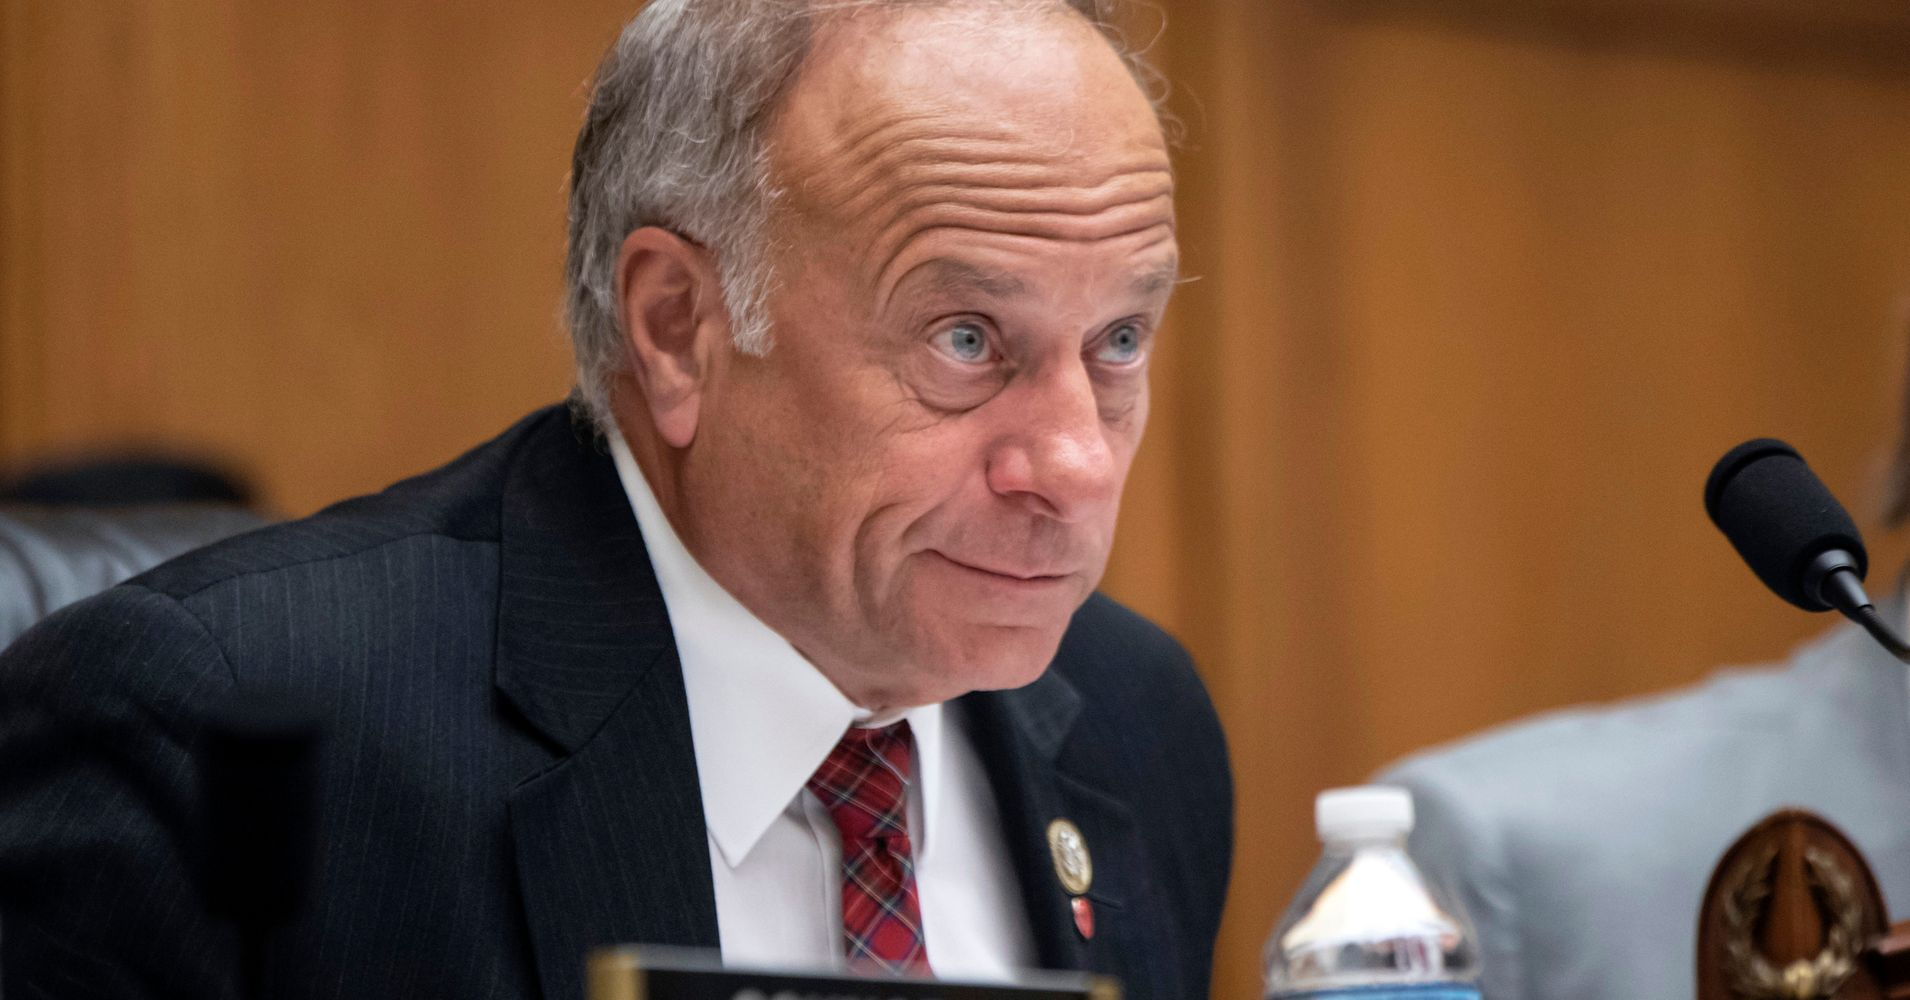 Congressional Black Caucus Calls For White Supremacist Steve King To Face Consequences - HuffPost